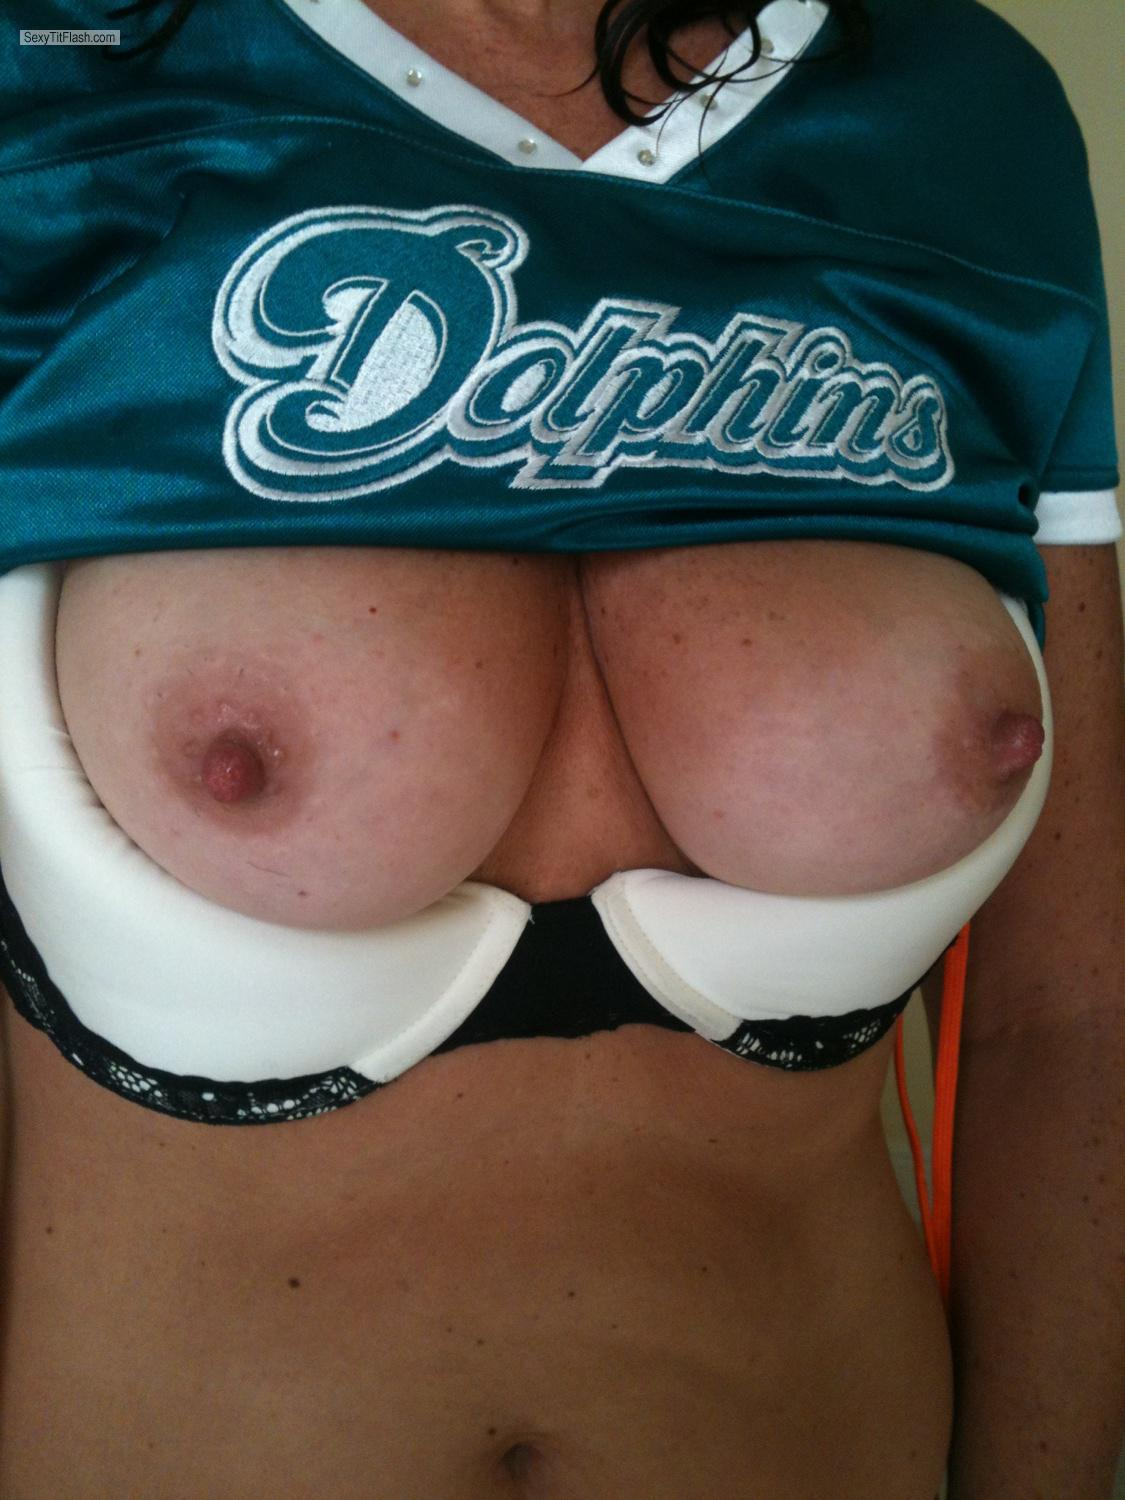 Tit Flash: Medium Tits By IPhone - Deelicious from United States